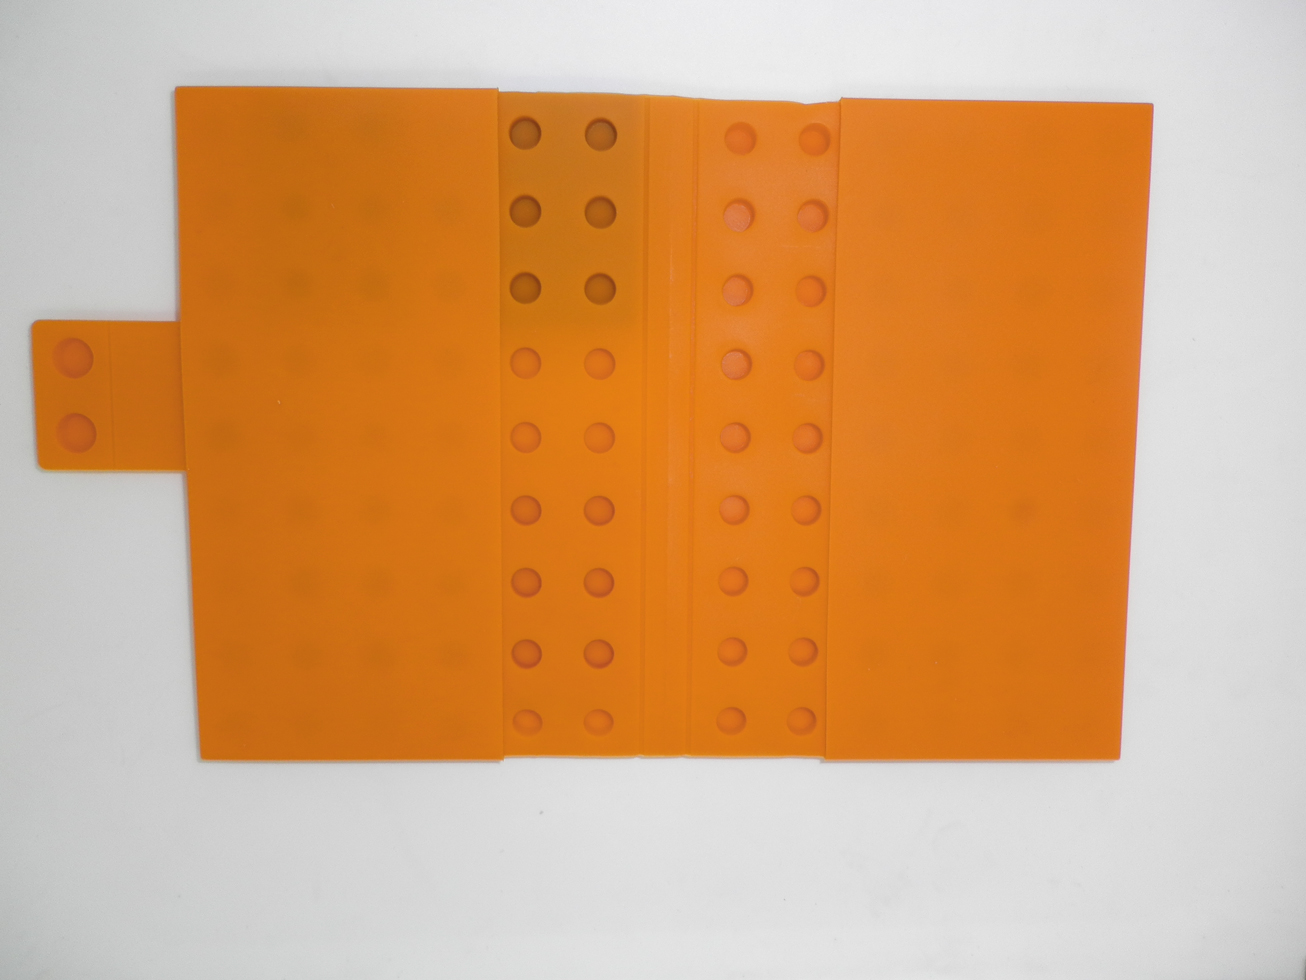 http://www.refinehksilicone.cn/data/images/product/20180417110923_340.jpg